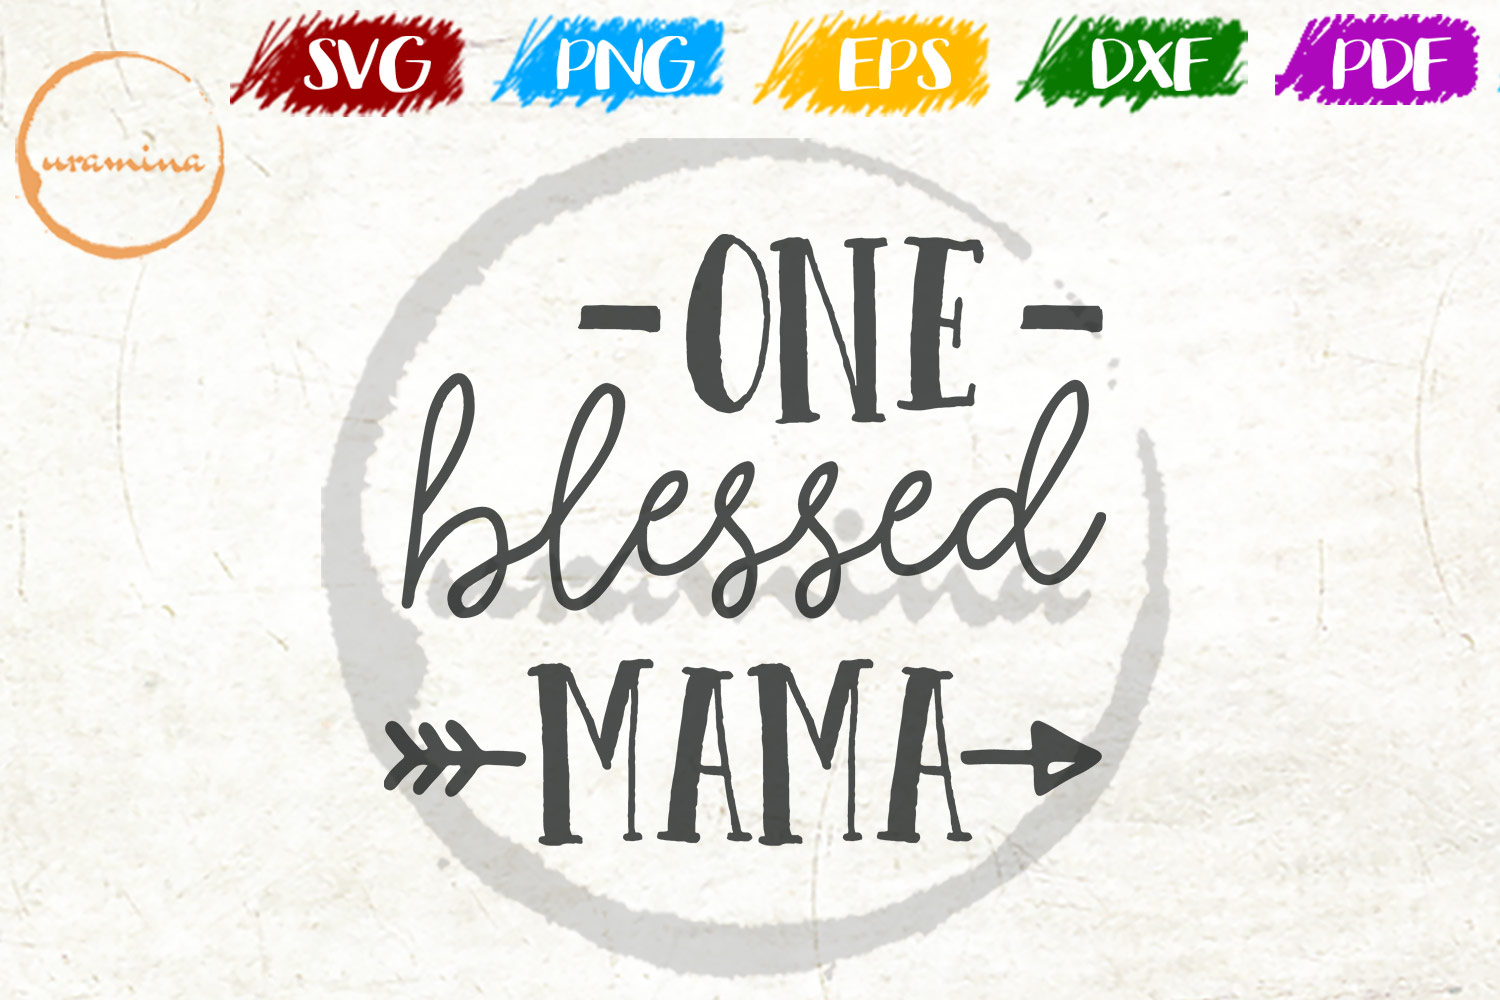 Download Free One Blessed Mama Graphic By Uramina Creative Fabrica for Cricut Explore, Silhouette and other cutting machines.